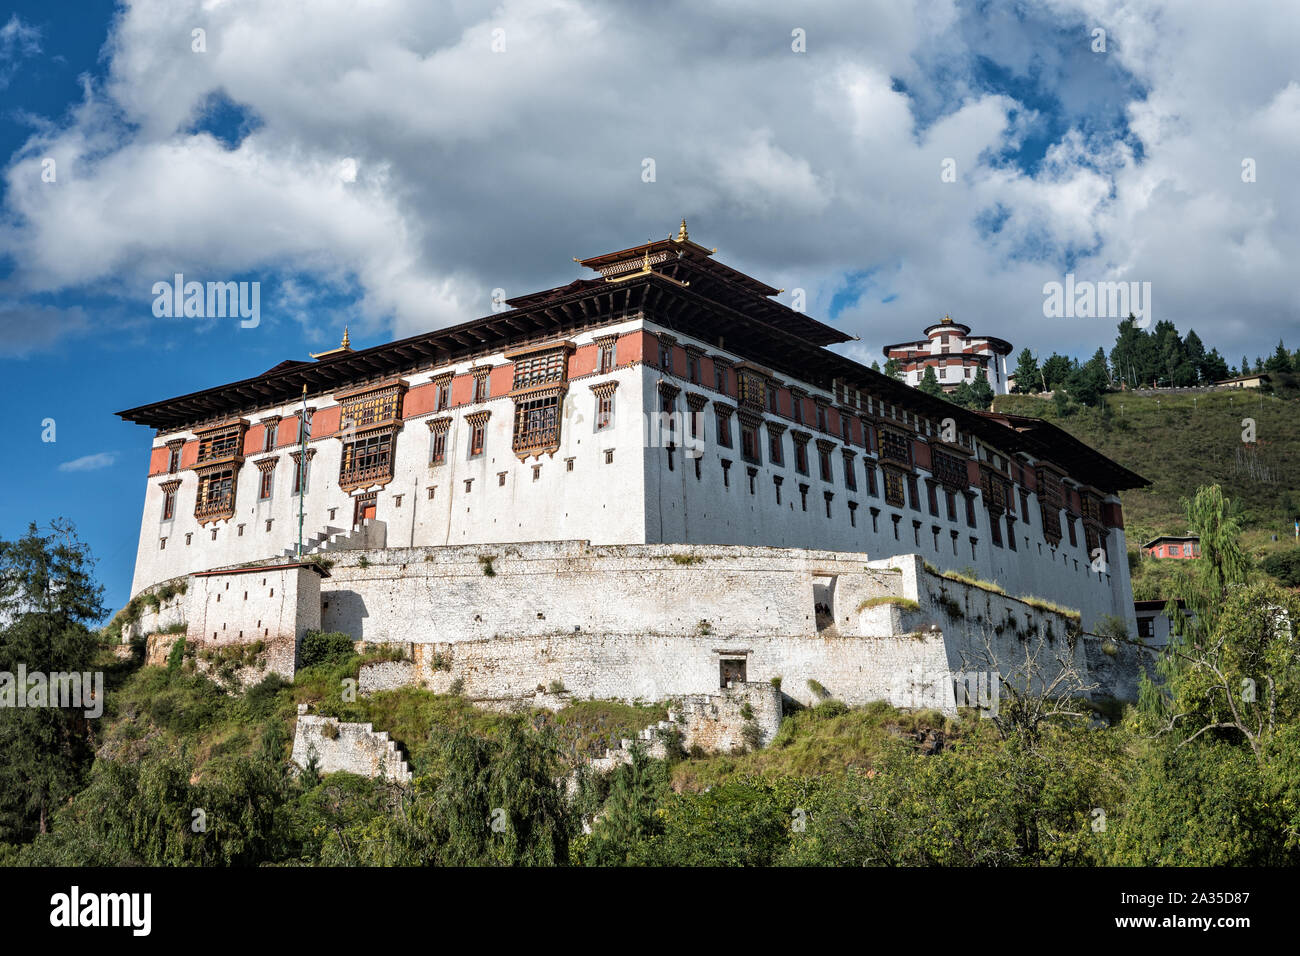 The Paro dzong (Rinpung Dzong) with the National Museum of Bhutan Stock Photo